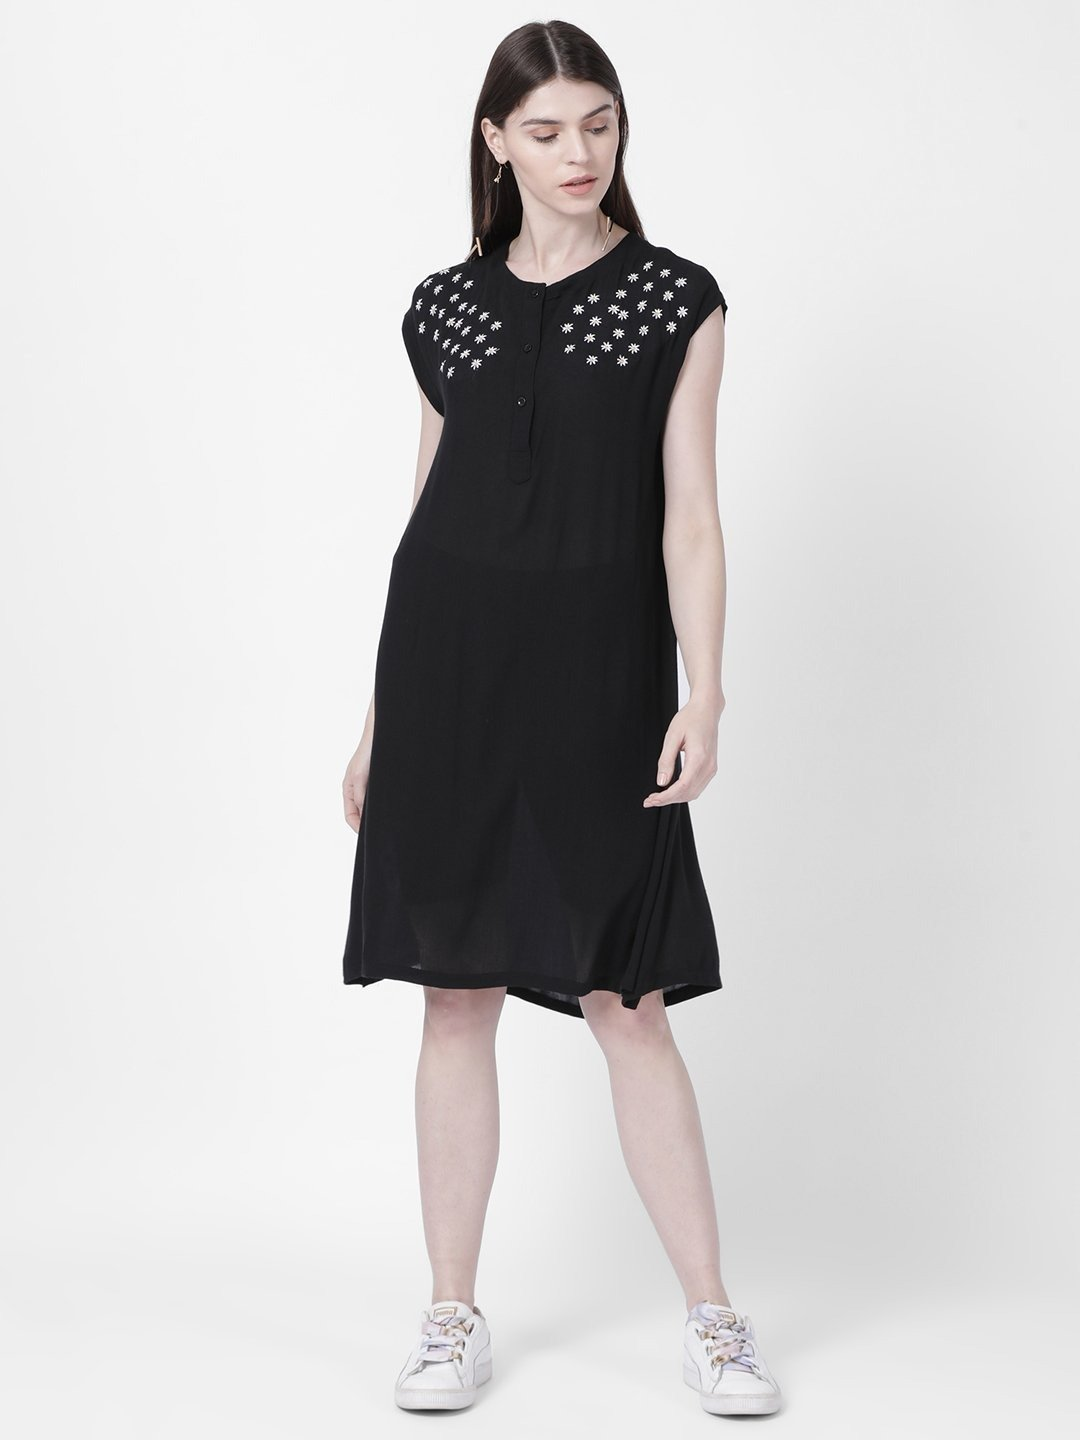 Embroidered Rayon Crepe Black Dress